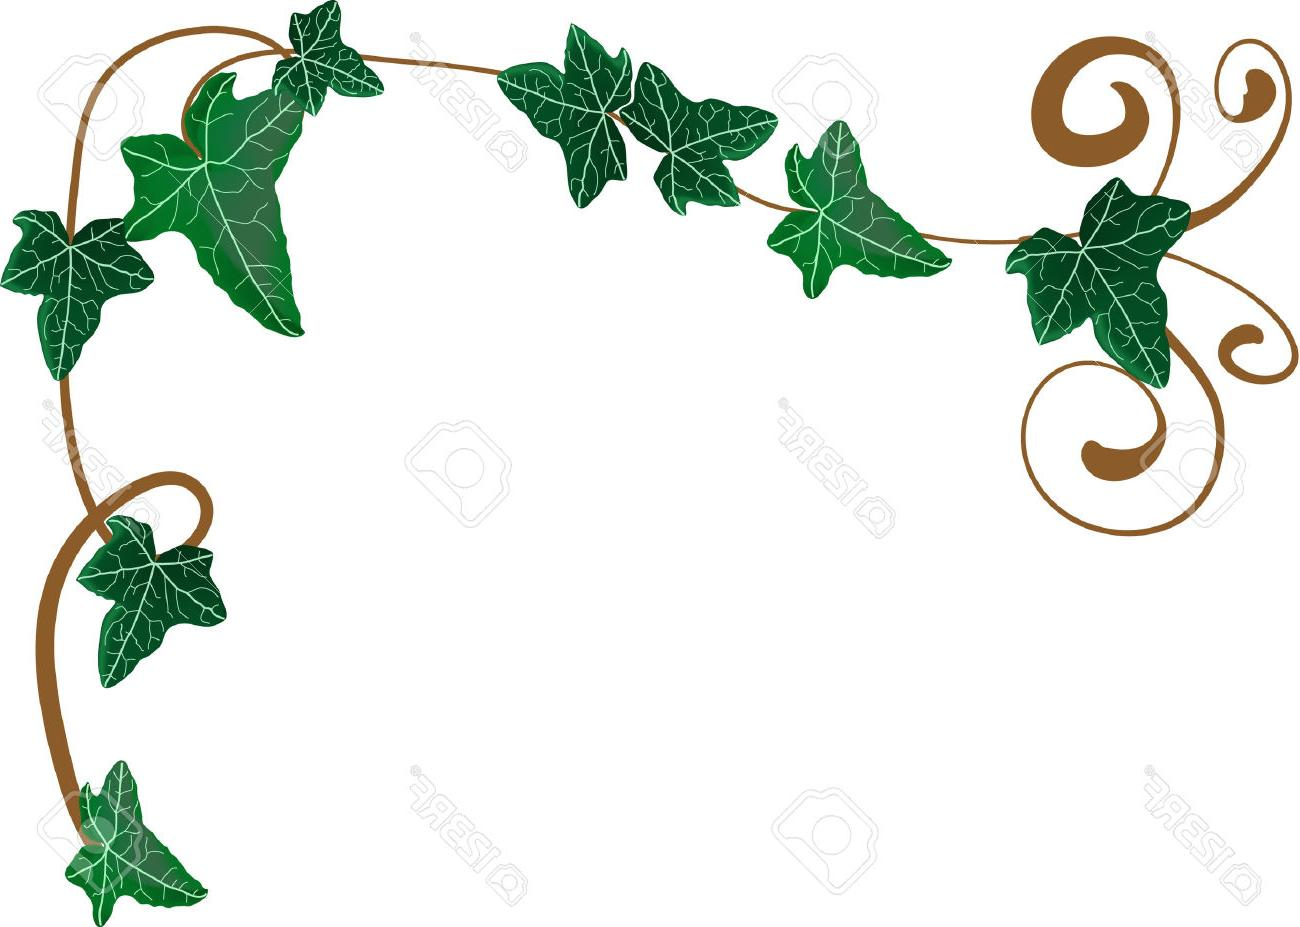 hight resolution of 1300x927 hd vector illustration of frame from ivy stock border design